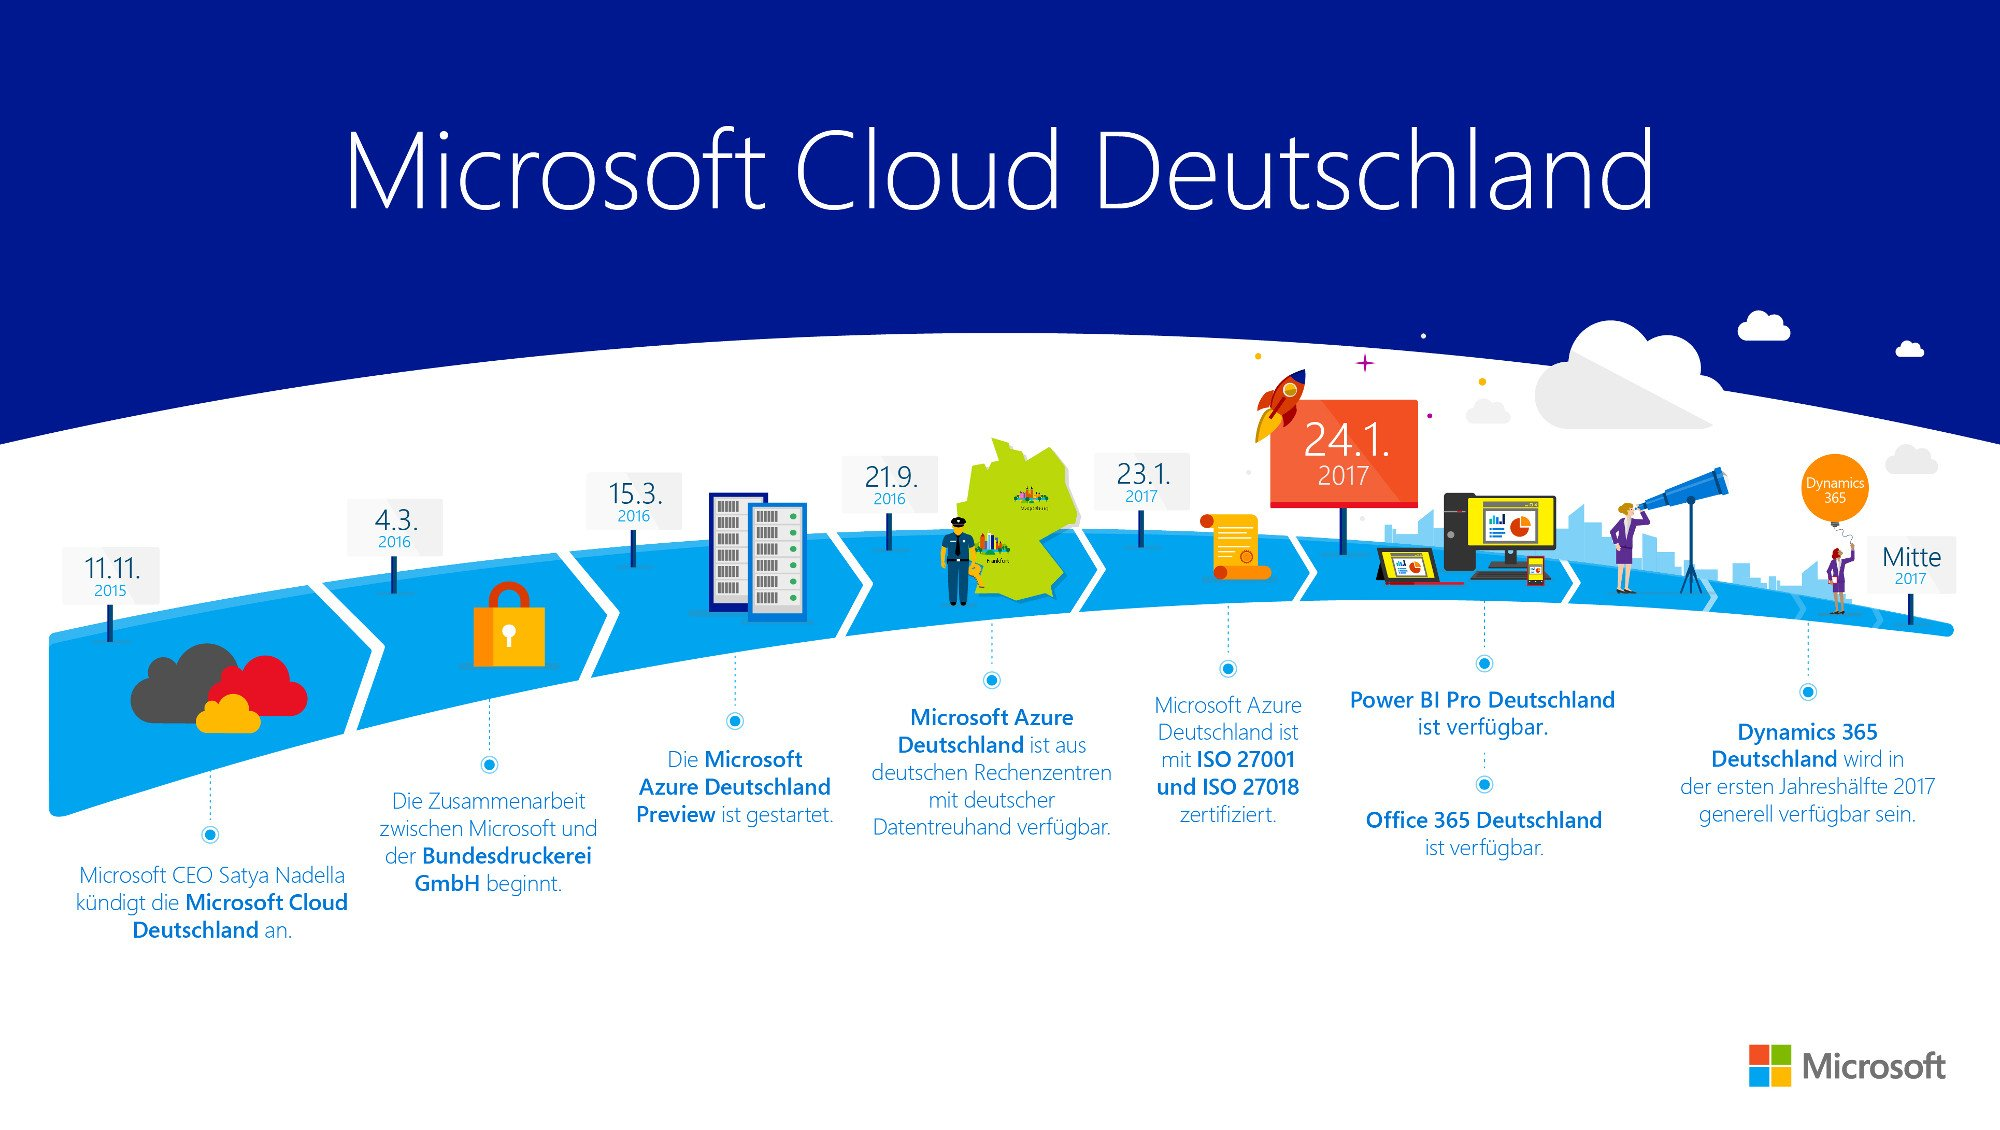 microsoft cloud viel viel mehr als blo onedrive und. Black Bedroom Furniture Sets. Home Design Ideas